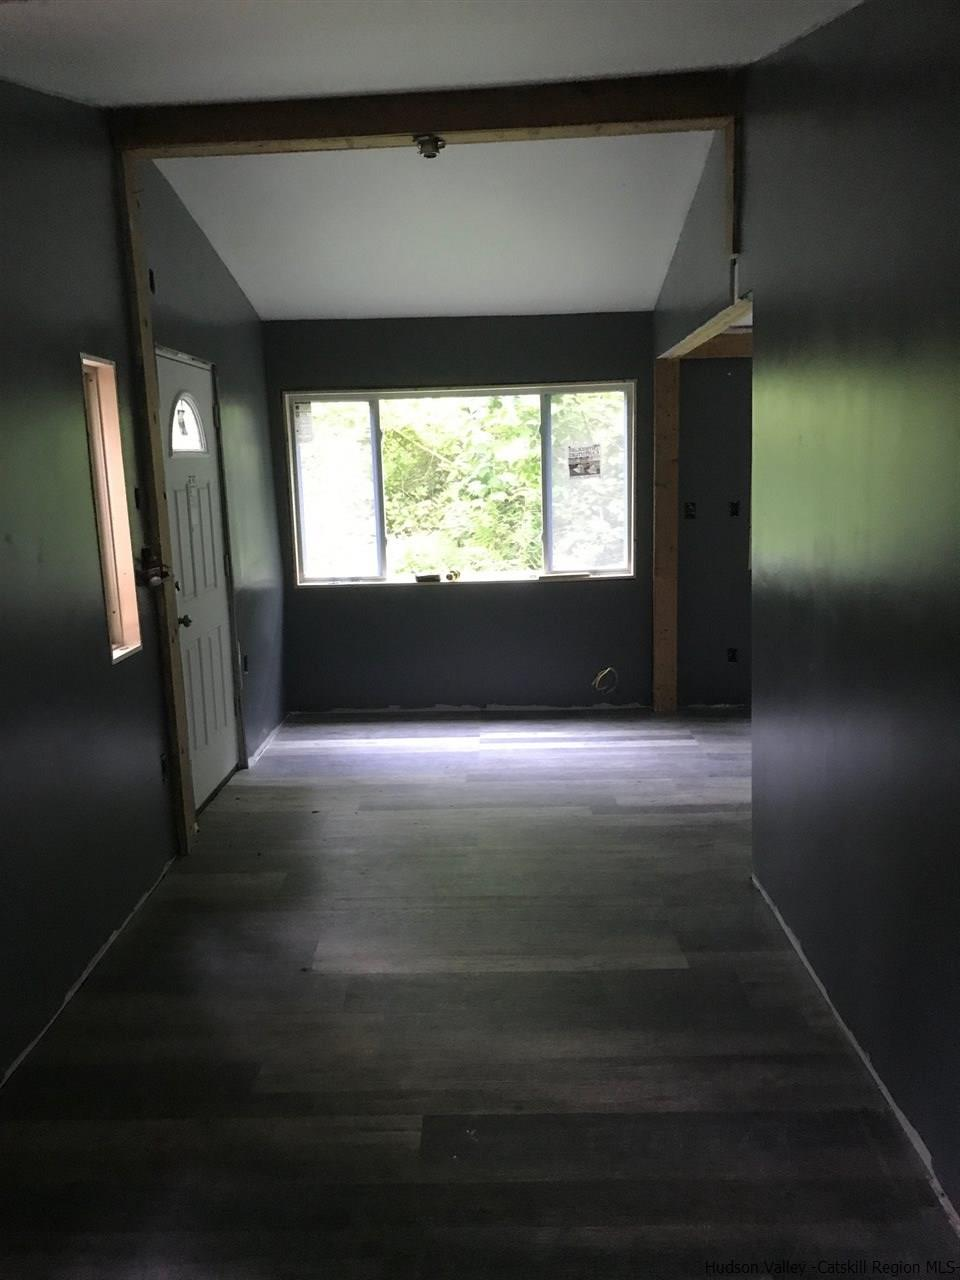 Additional photo for property listing at 21 Kallop Road 21 Kallop Road Rosendale, New York 12401 United States